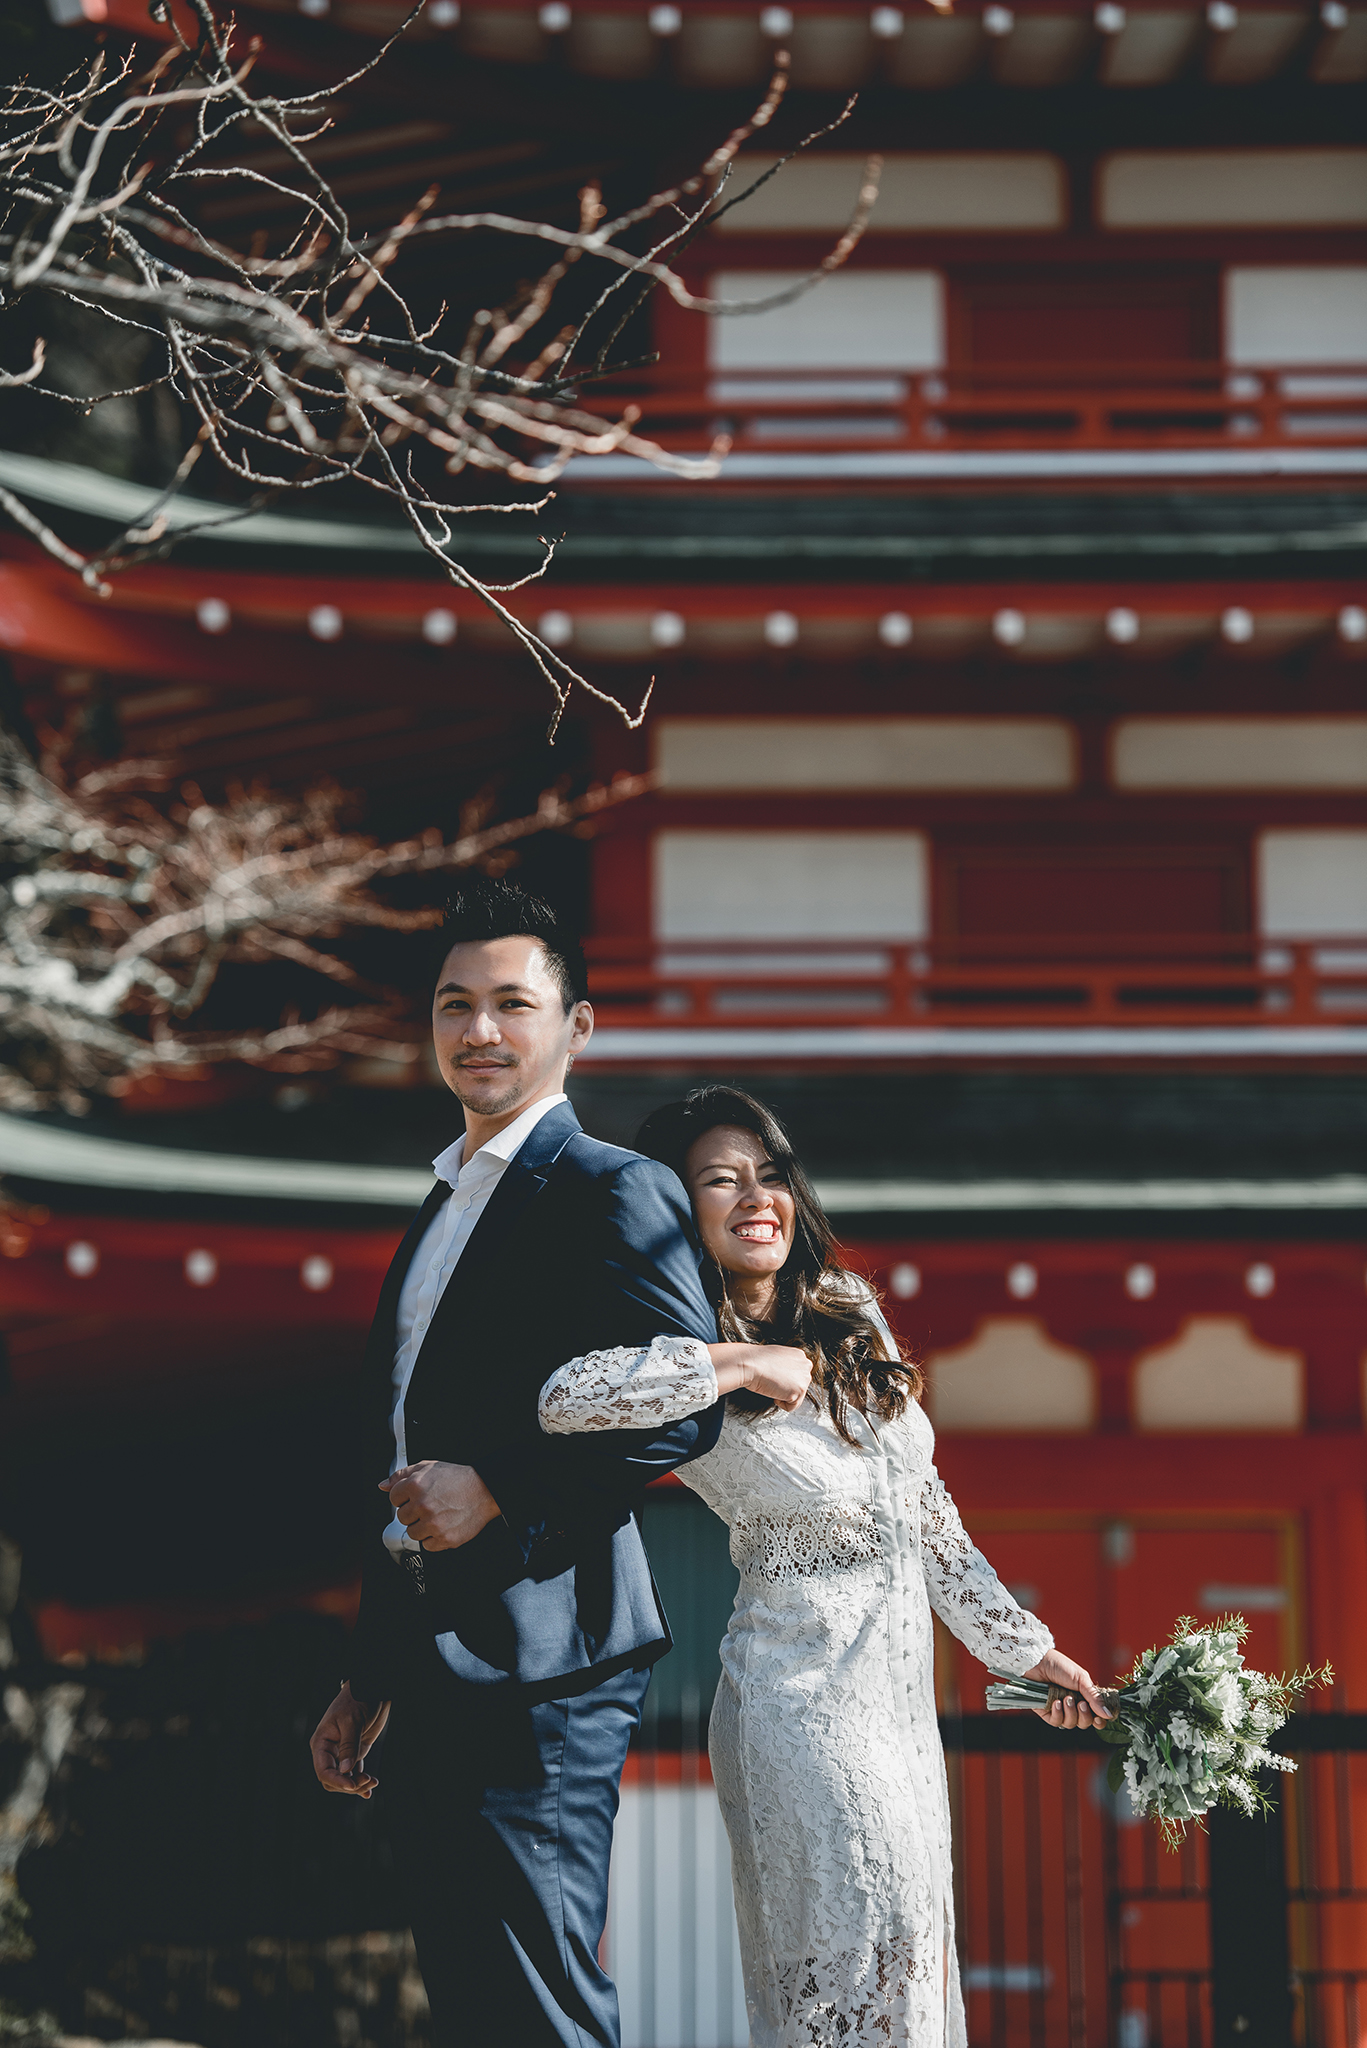 Japan Prewedding 5.JPG